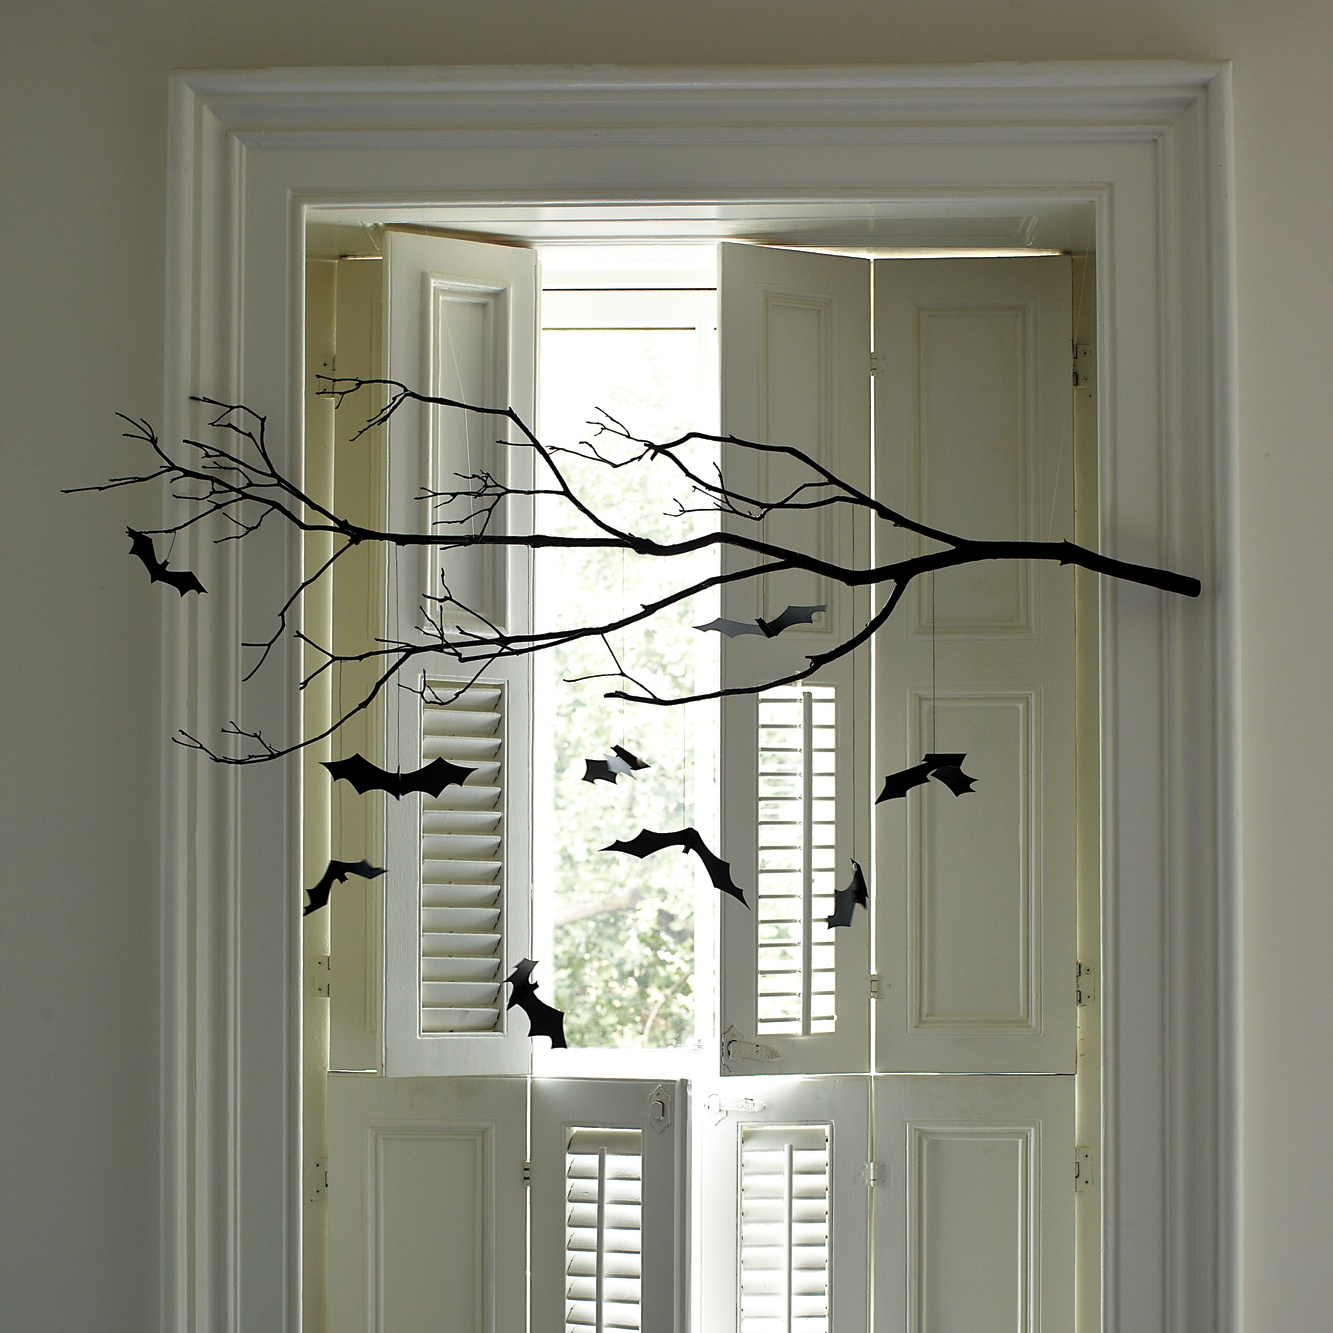 easy halloween decorations and crafts to save money. Black Bedroom Furniture Sets. Home Design Ideas